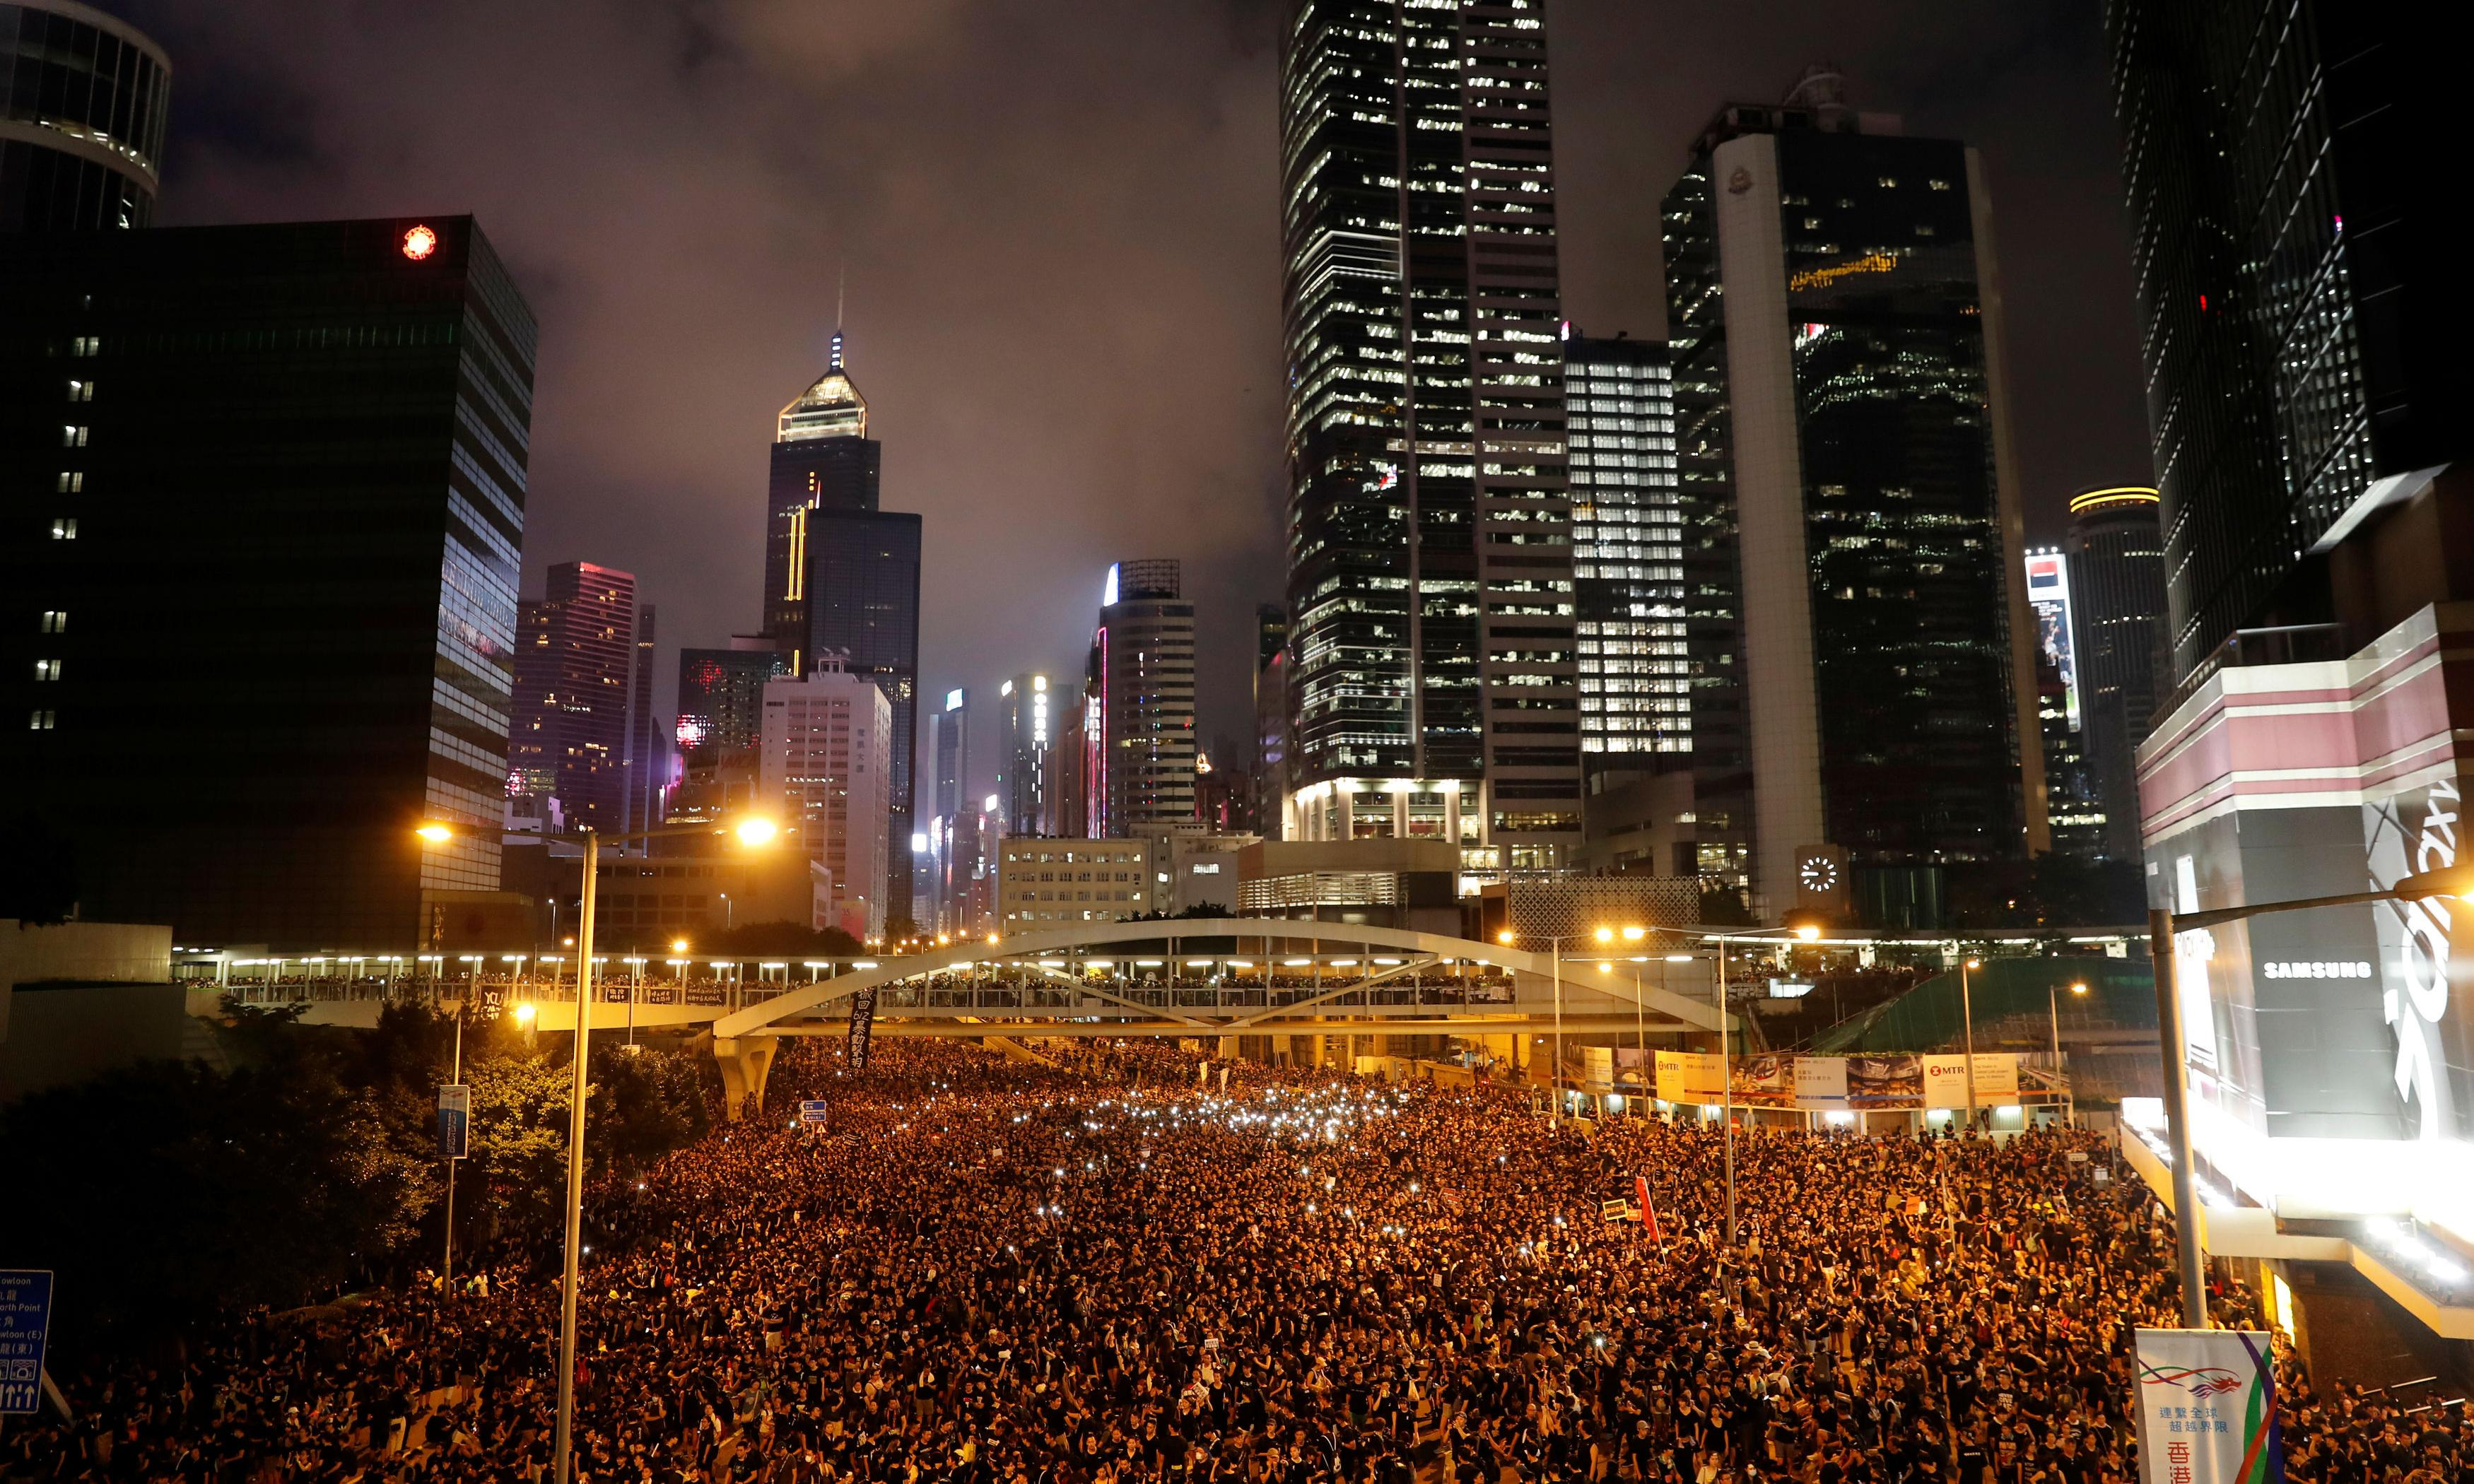 'They're kids, not rioters': new generation of protesters bring Hong Kong to standstill